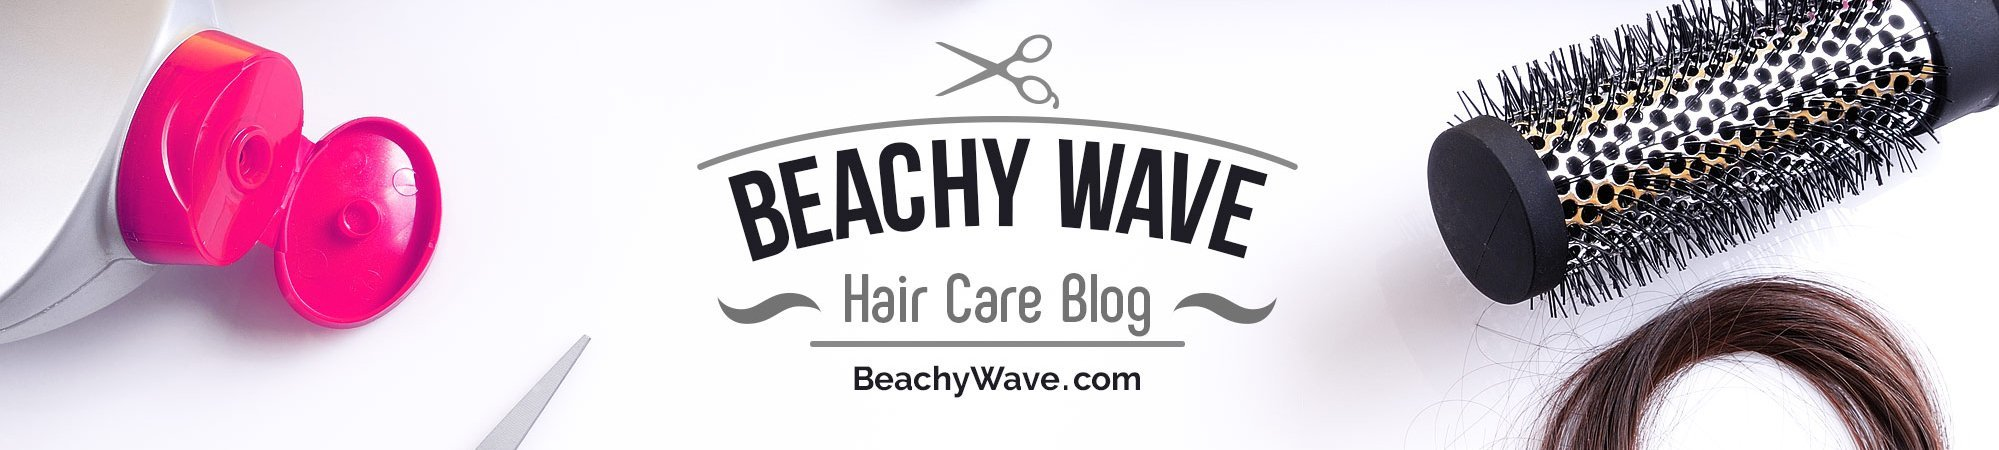 BeachyWave